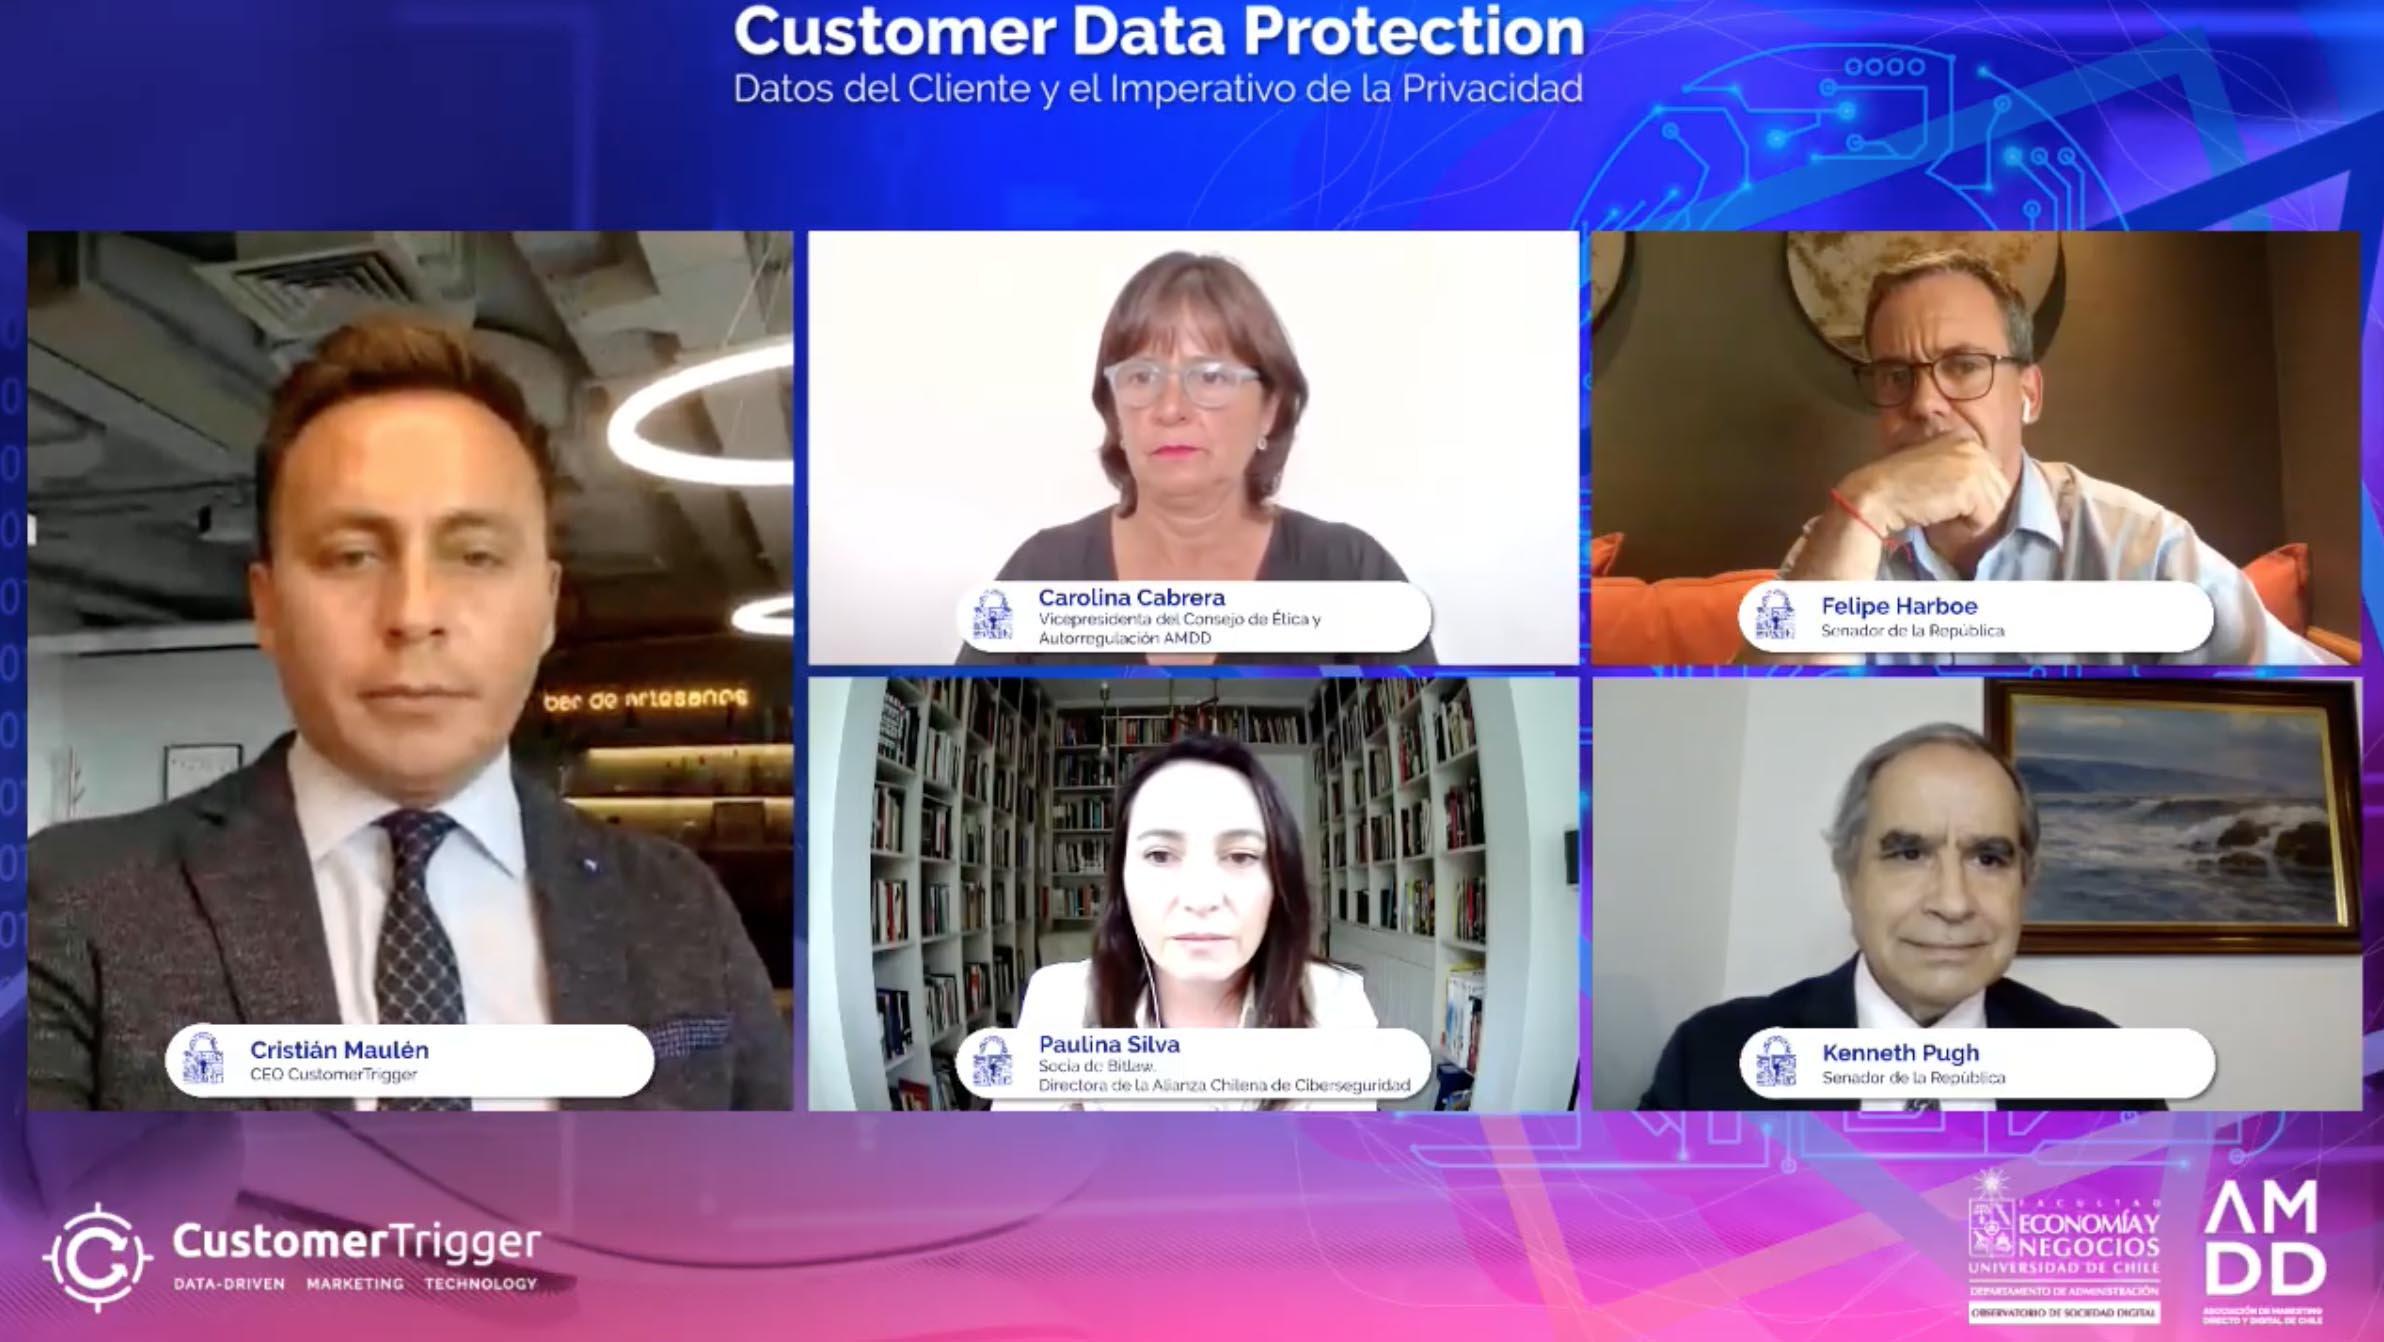 Seminario customer data protection_en vivo